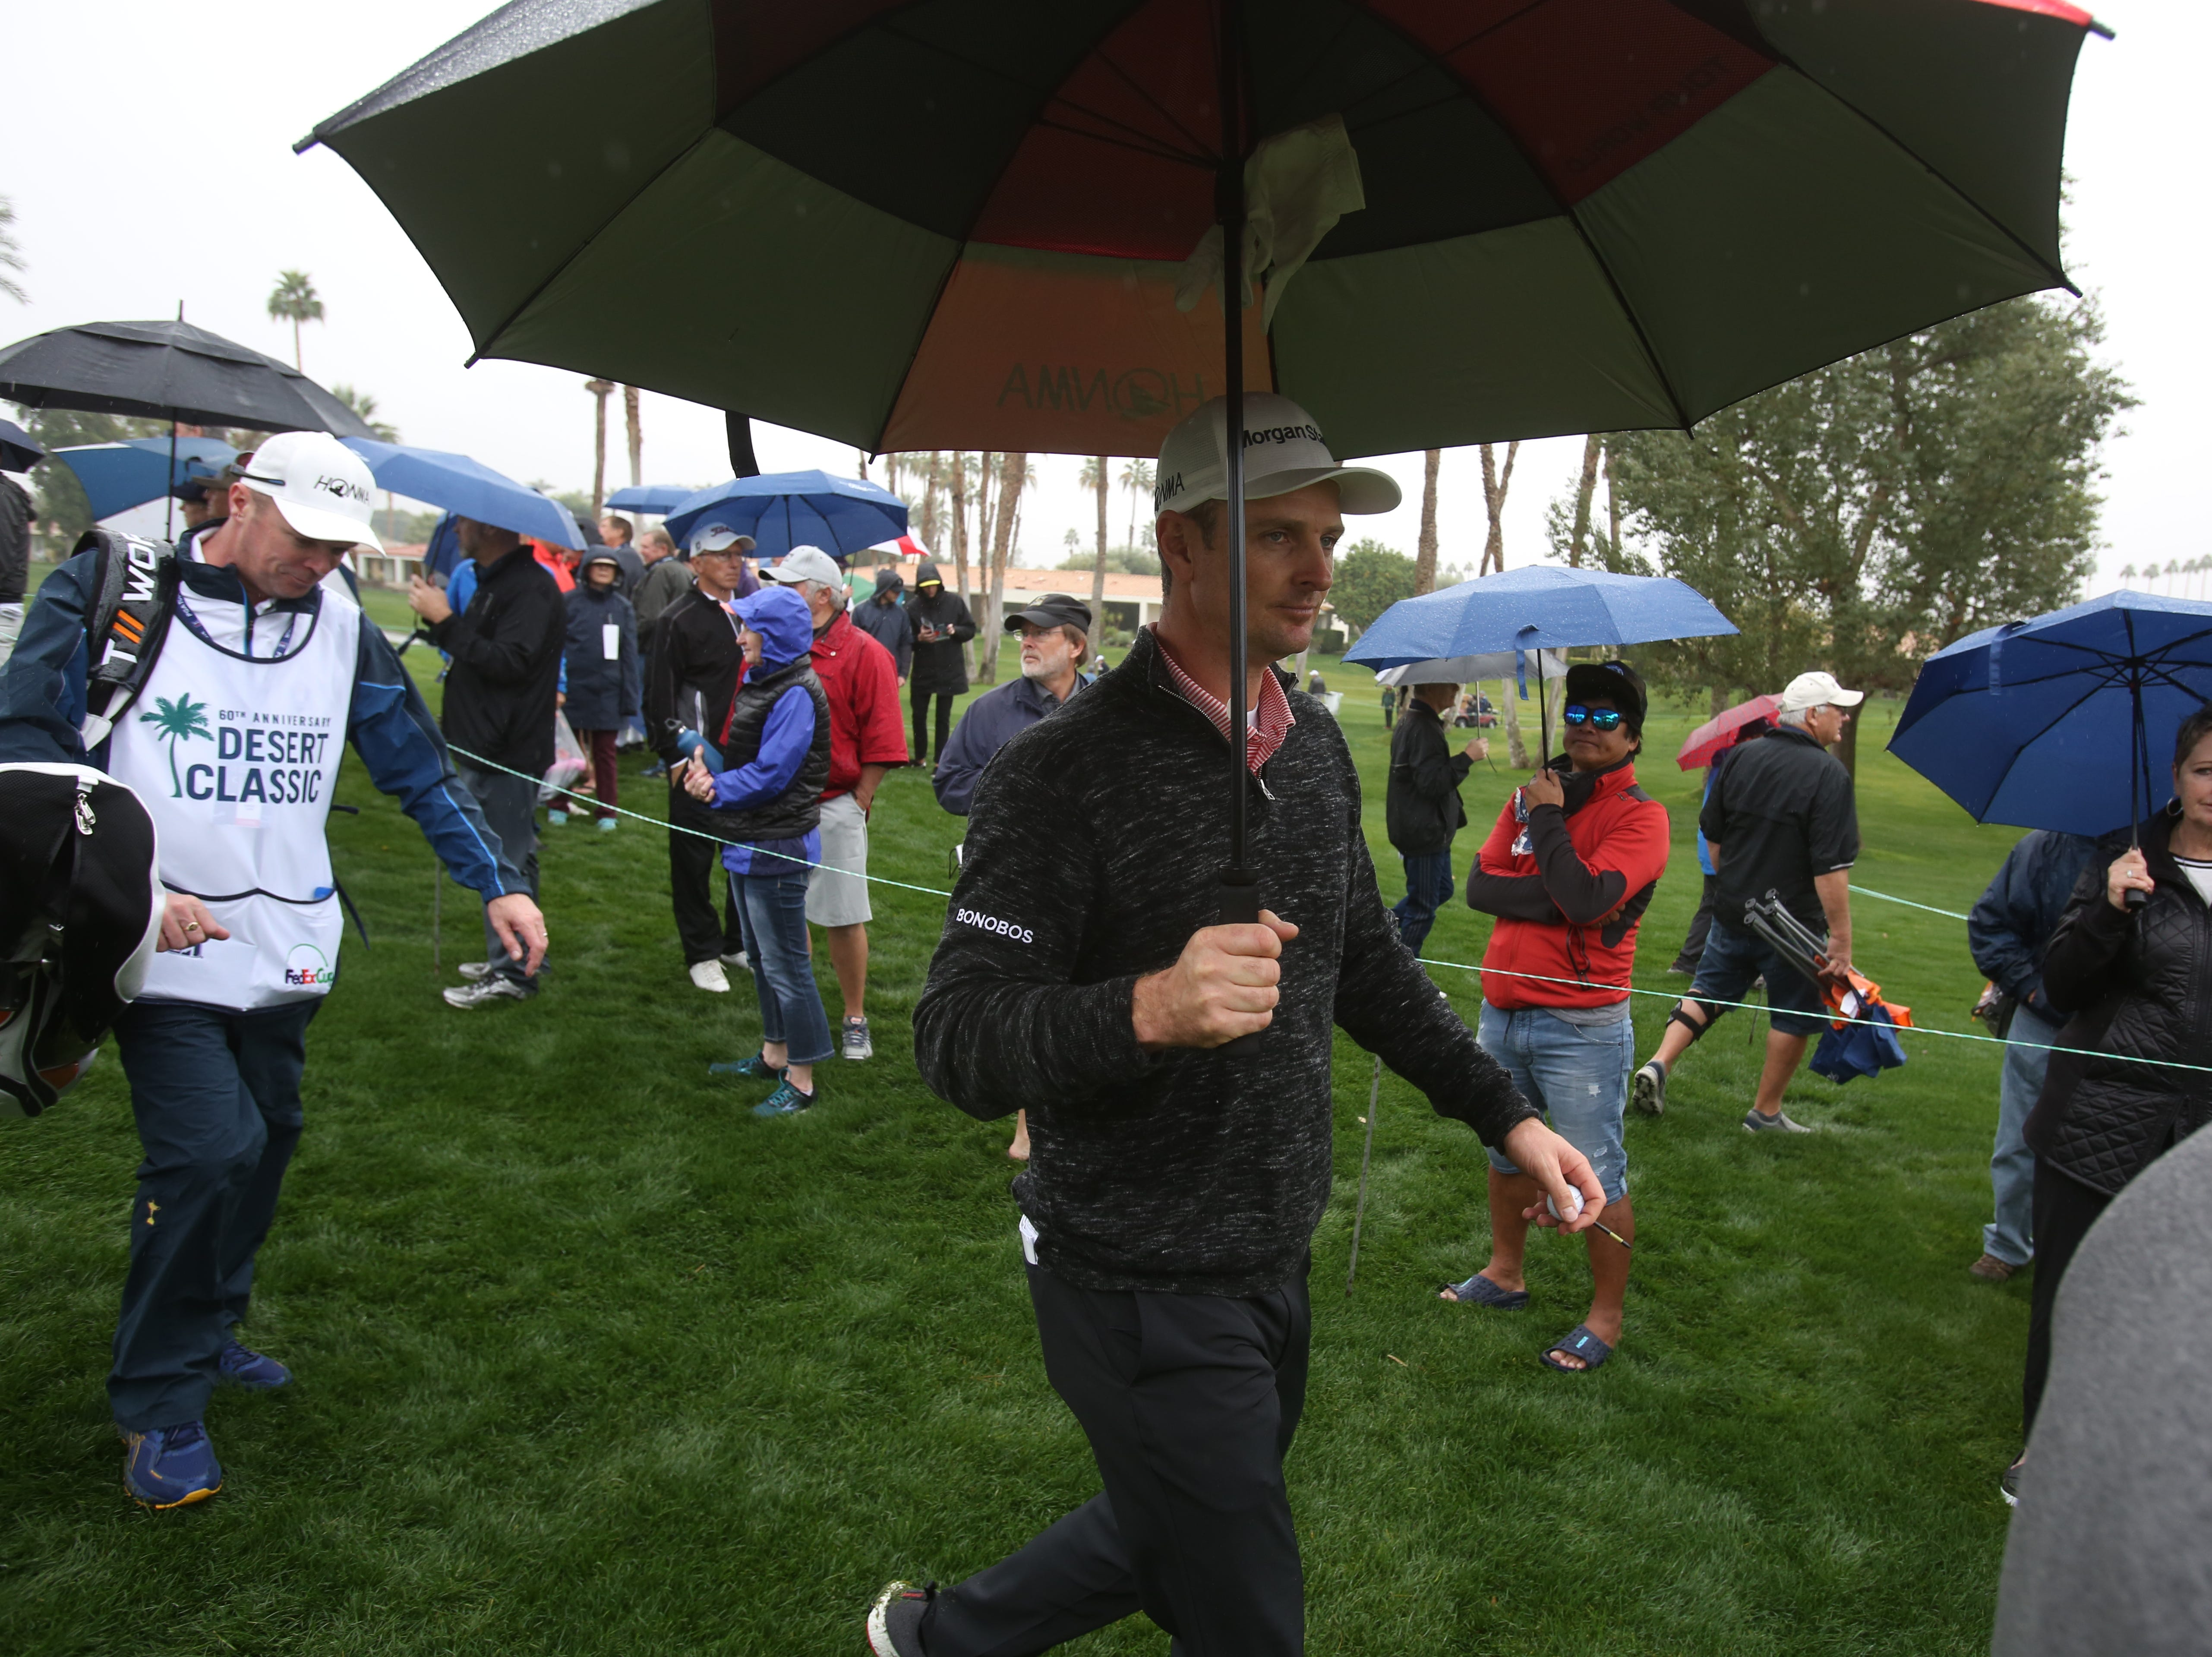 Justin Rose walks to 7 tee box at La Quinta County Club during the 1st round of the Desert Classic on Thursday, January 17, 2019.